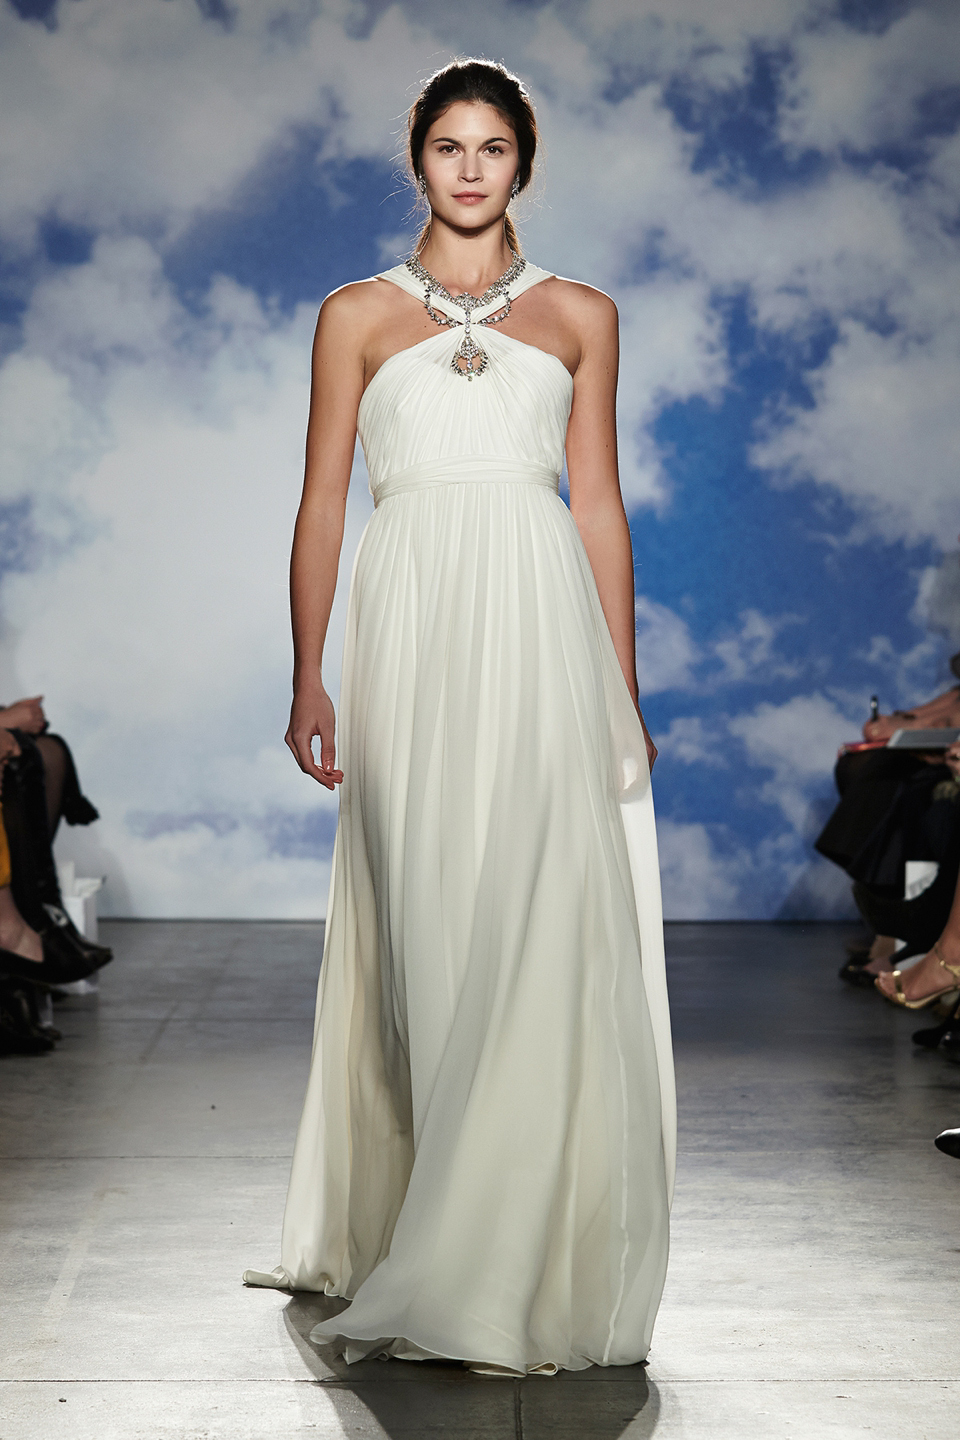 Jenny Packham 2015 Bridal Collection - New York Bridal Fashion Week Catwalk Images (Bridal Fashion )